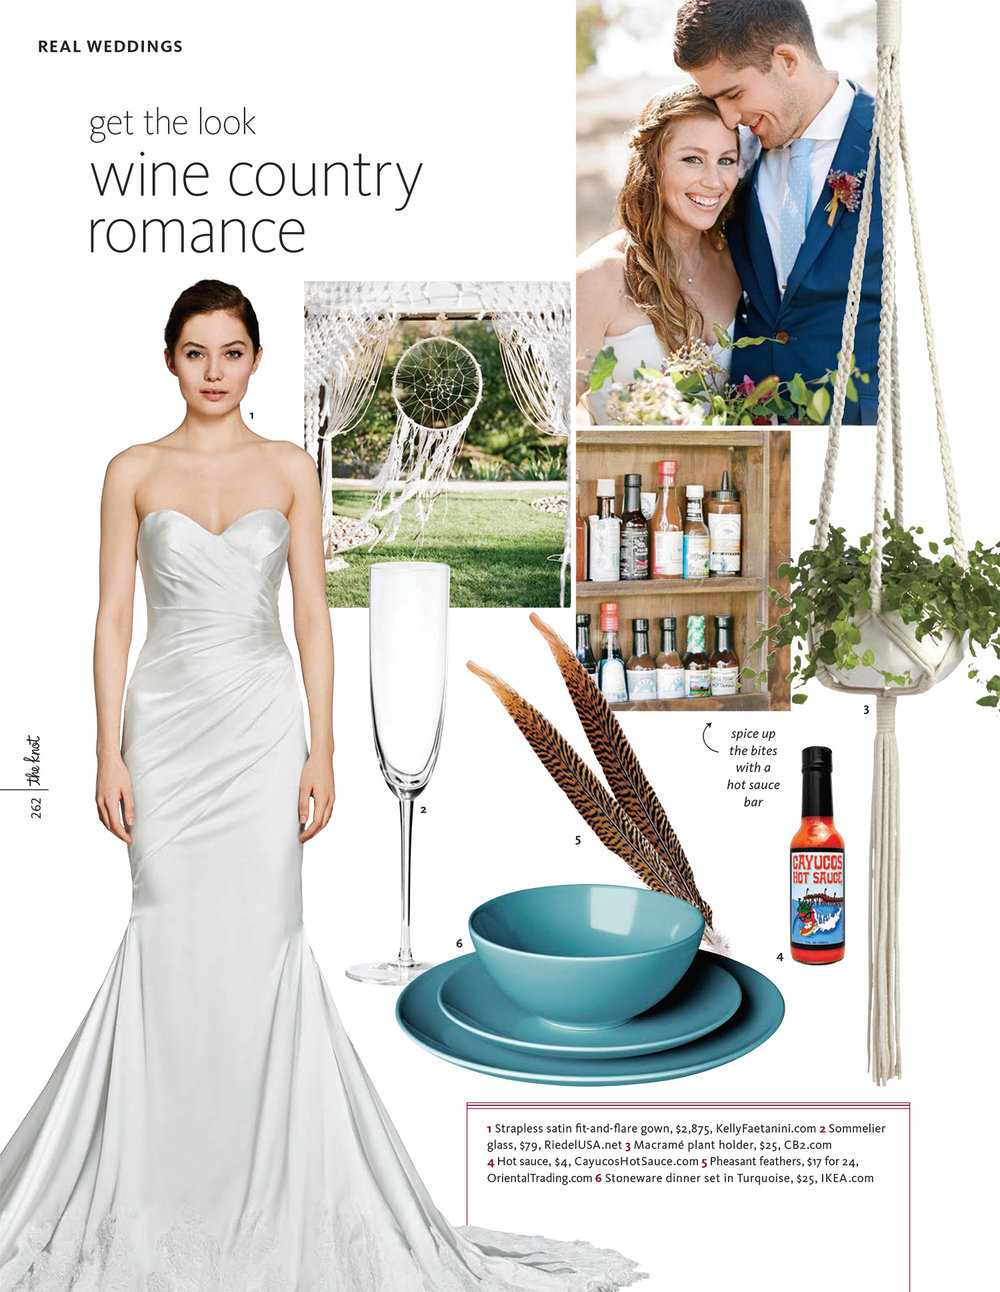 Tally & Sam's feature in The Knot 2016